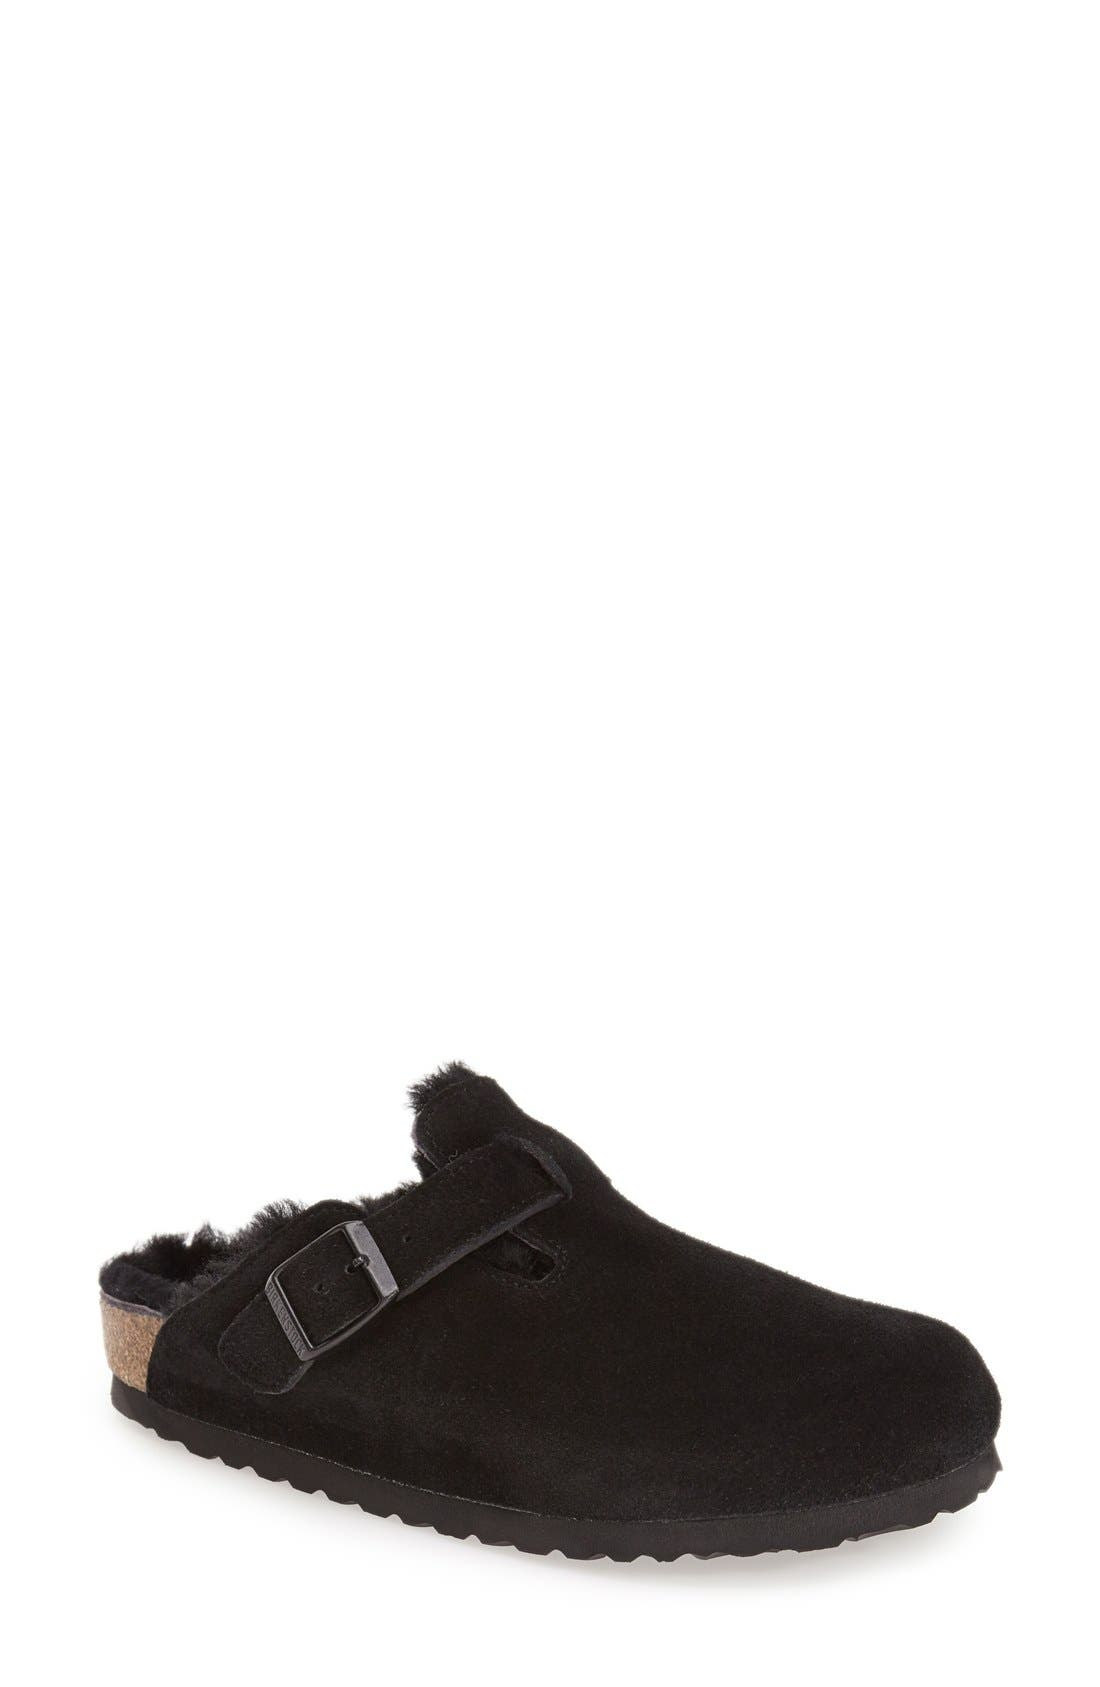 BIRKENSTOCK,                             'Boston' Genuine Shearling Lined Clog,                             Main thumbnail 1, color,                             BLACK